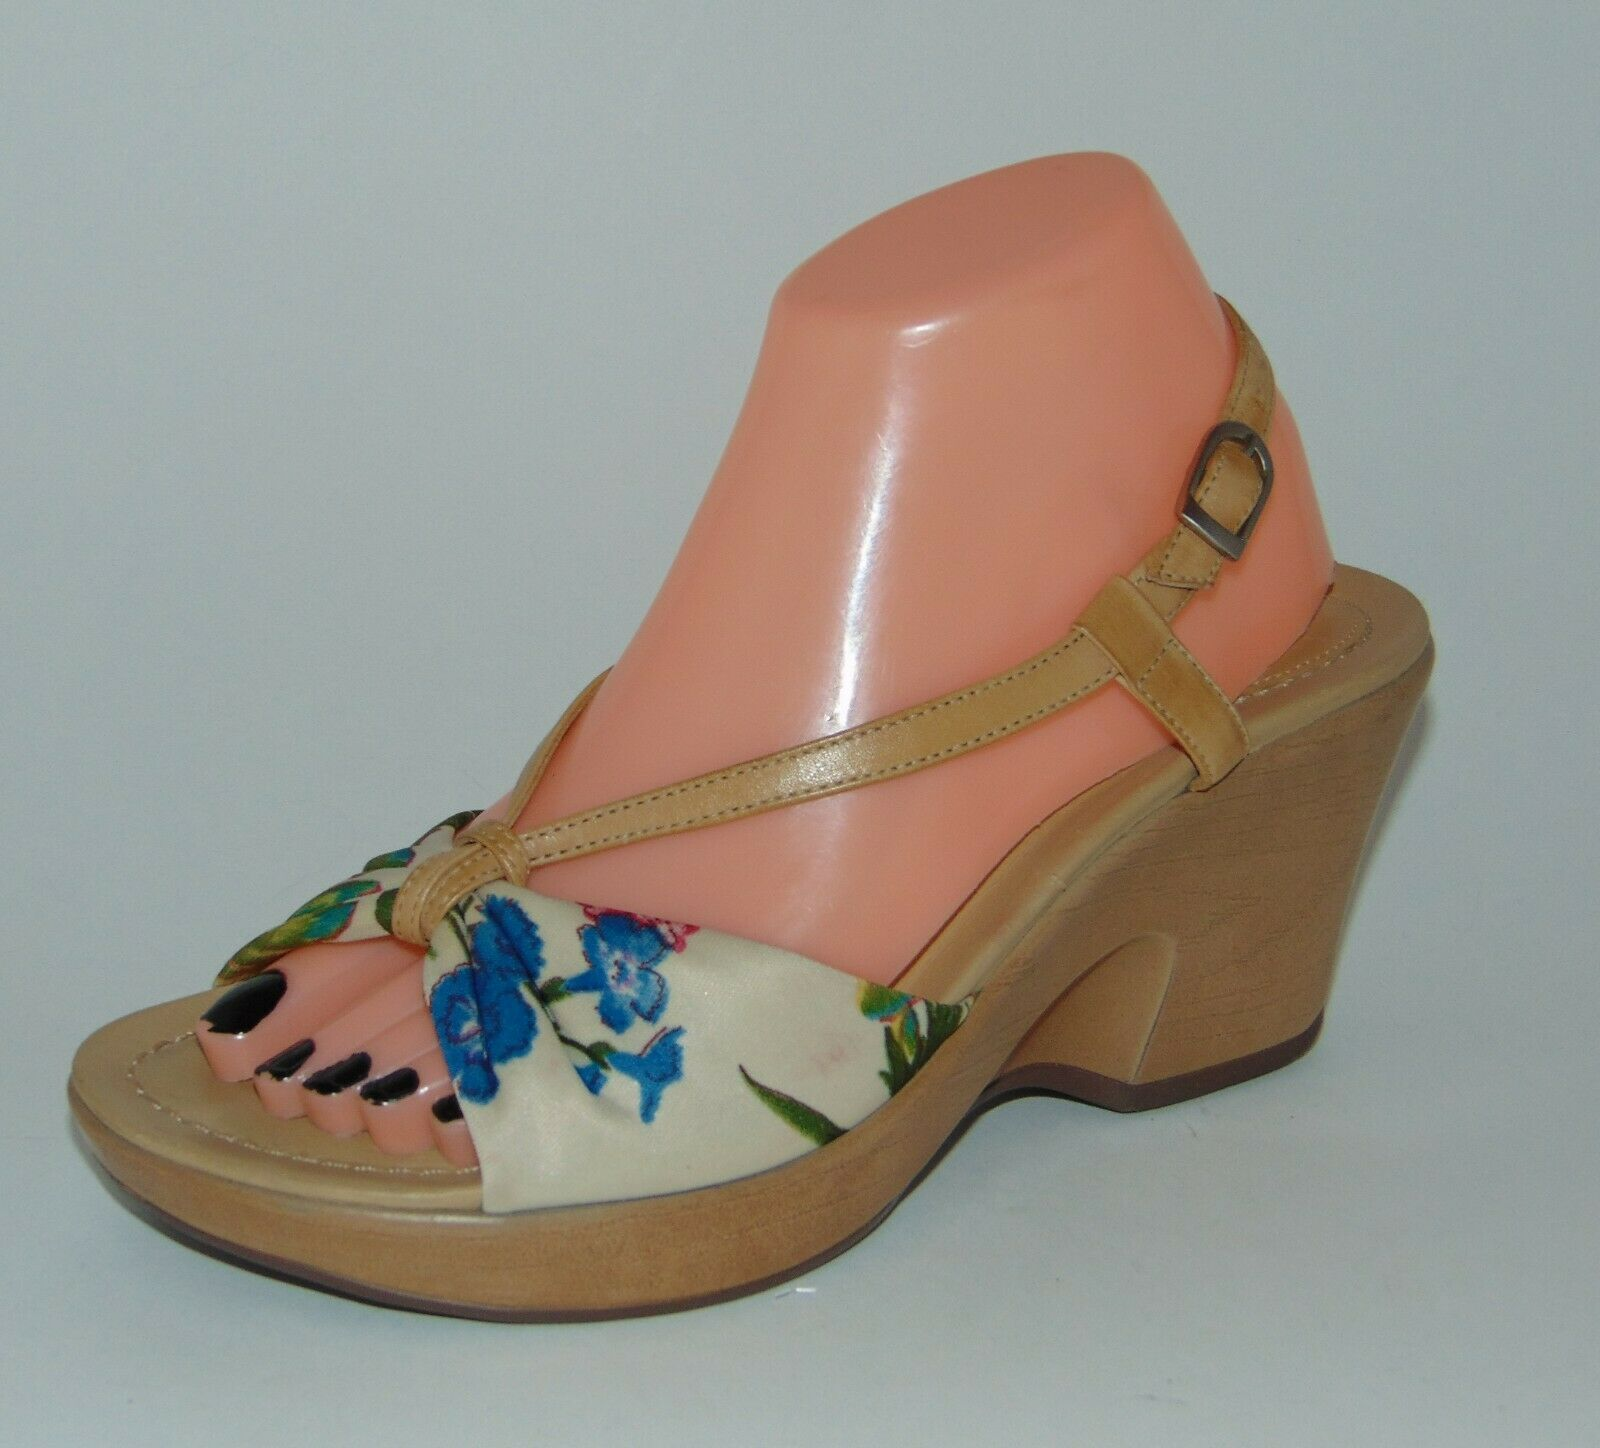 DANSKO Floral Fabric and Leather Sandals sz 38 7.5 - 8